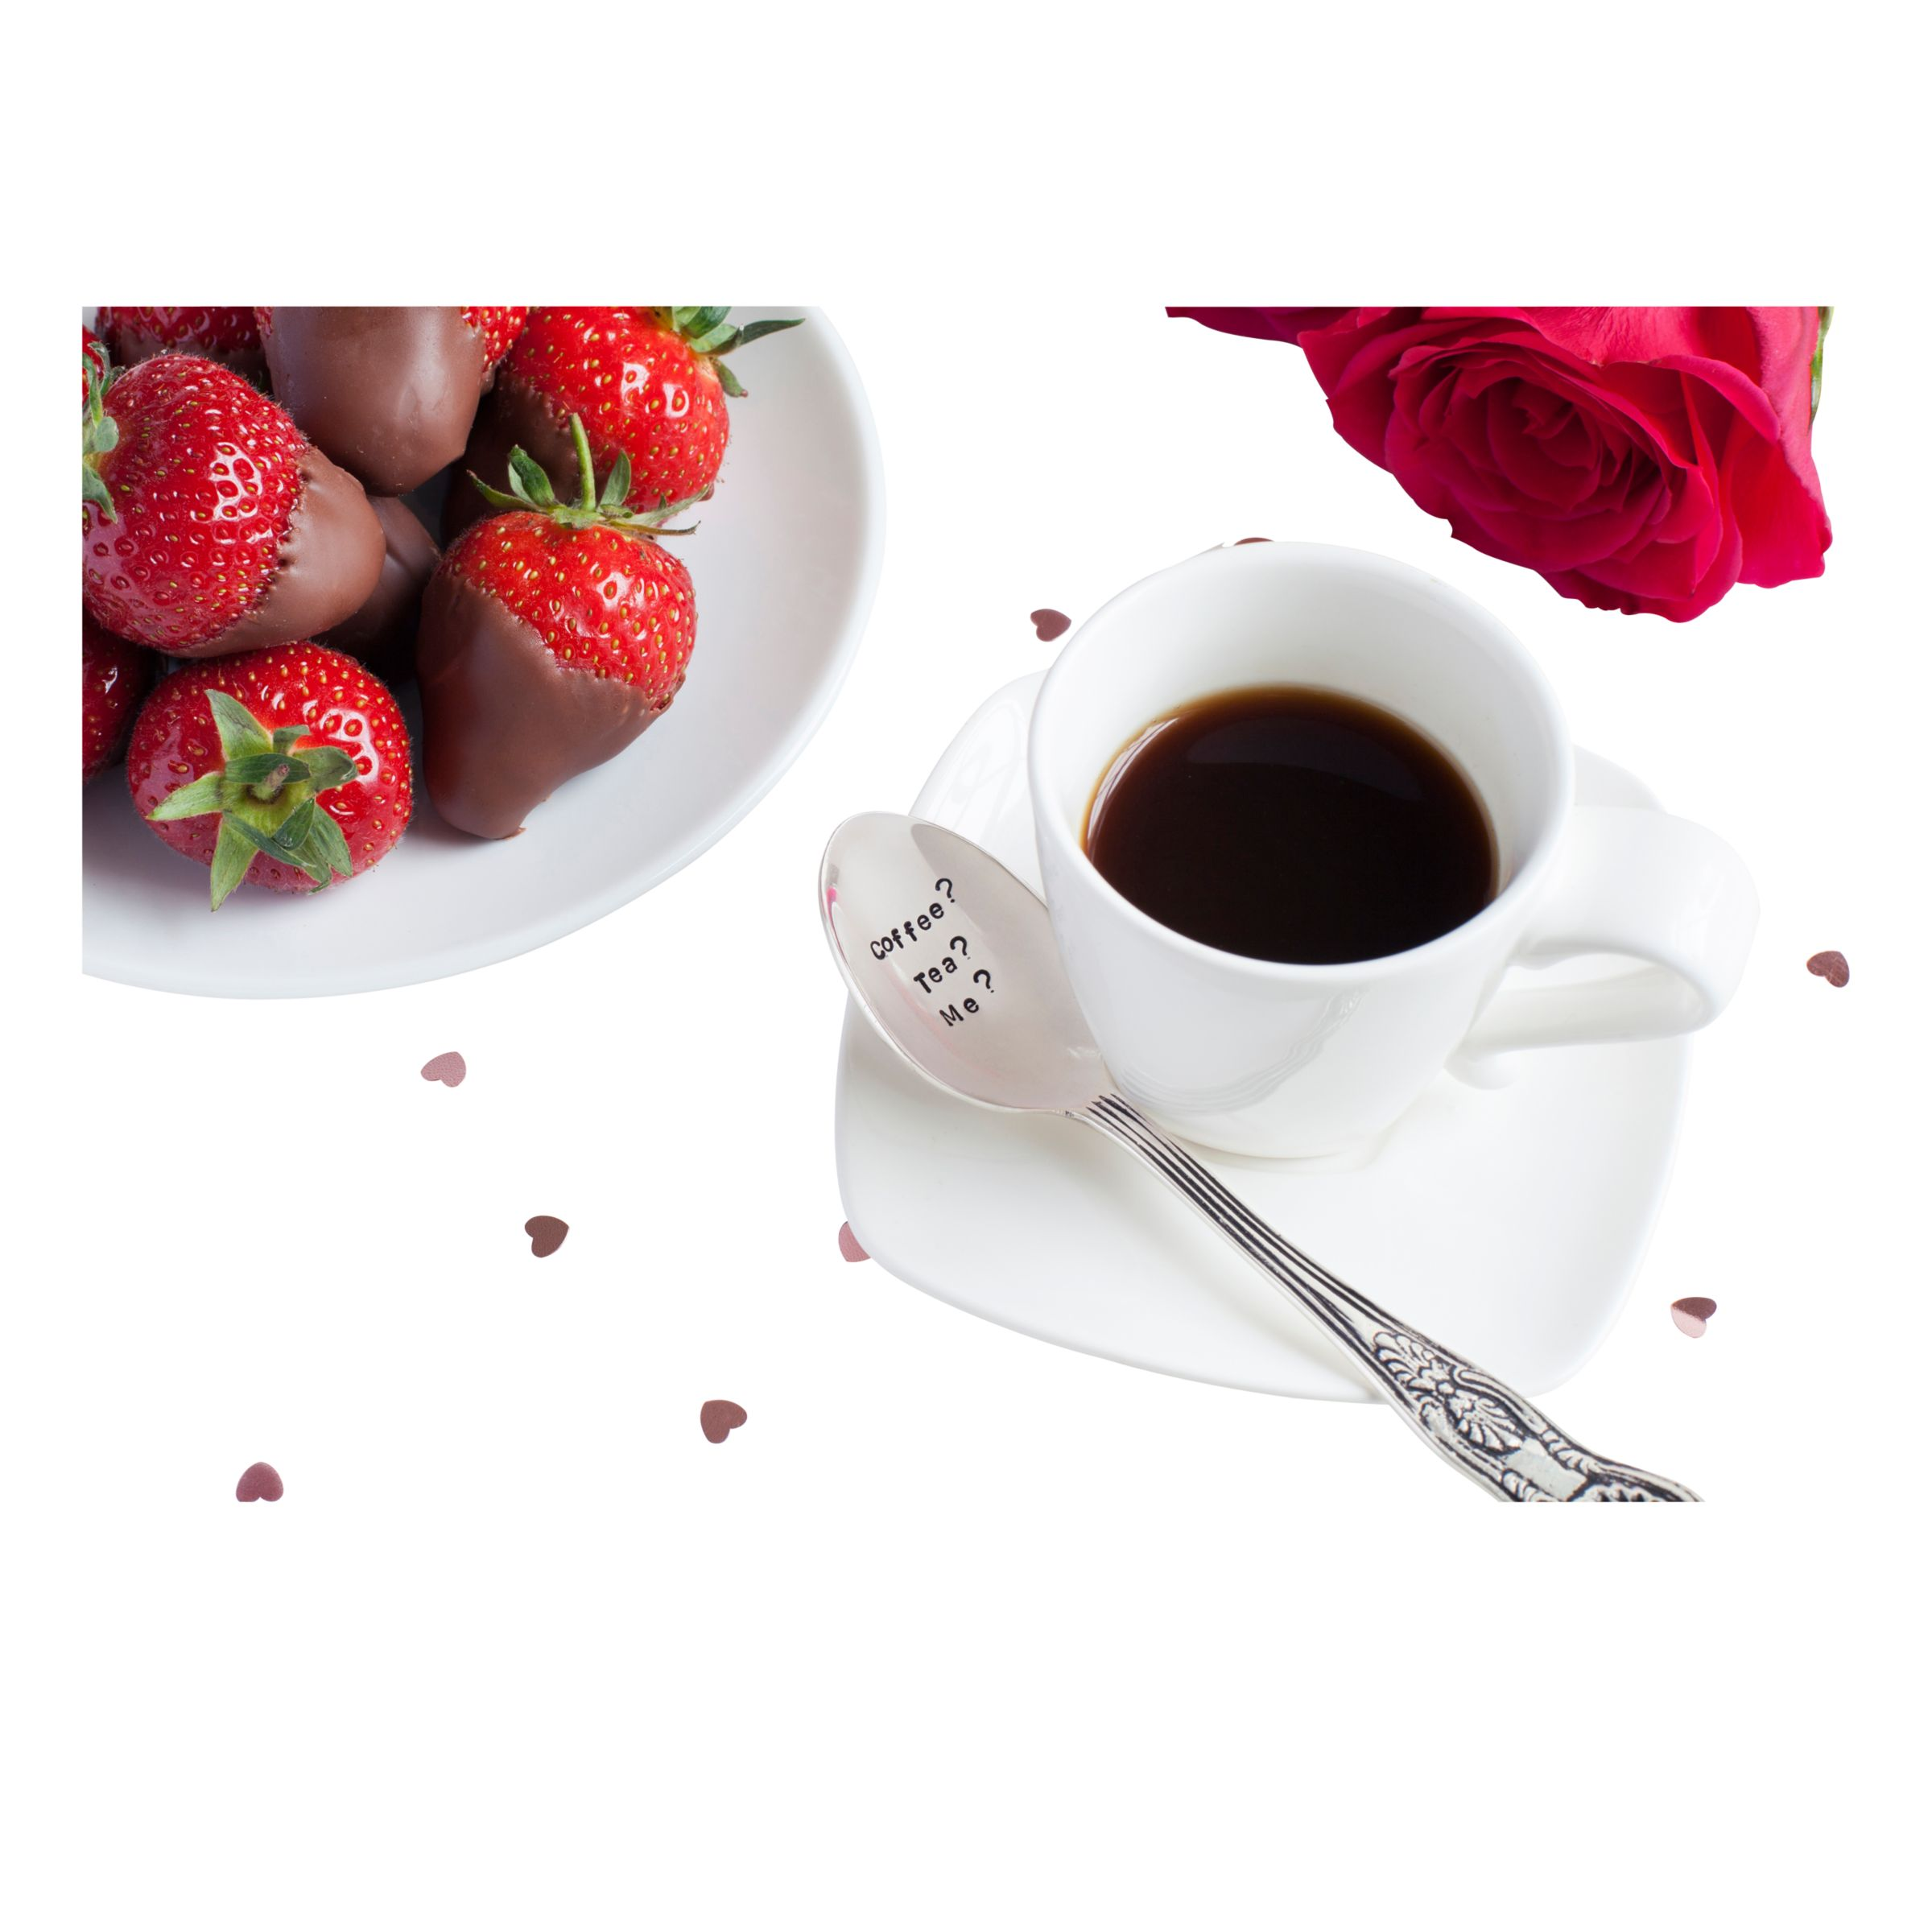 Cutlery Commission Cutlery Commission Silver-Plated Personalised Coffee Spoon